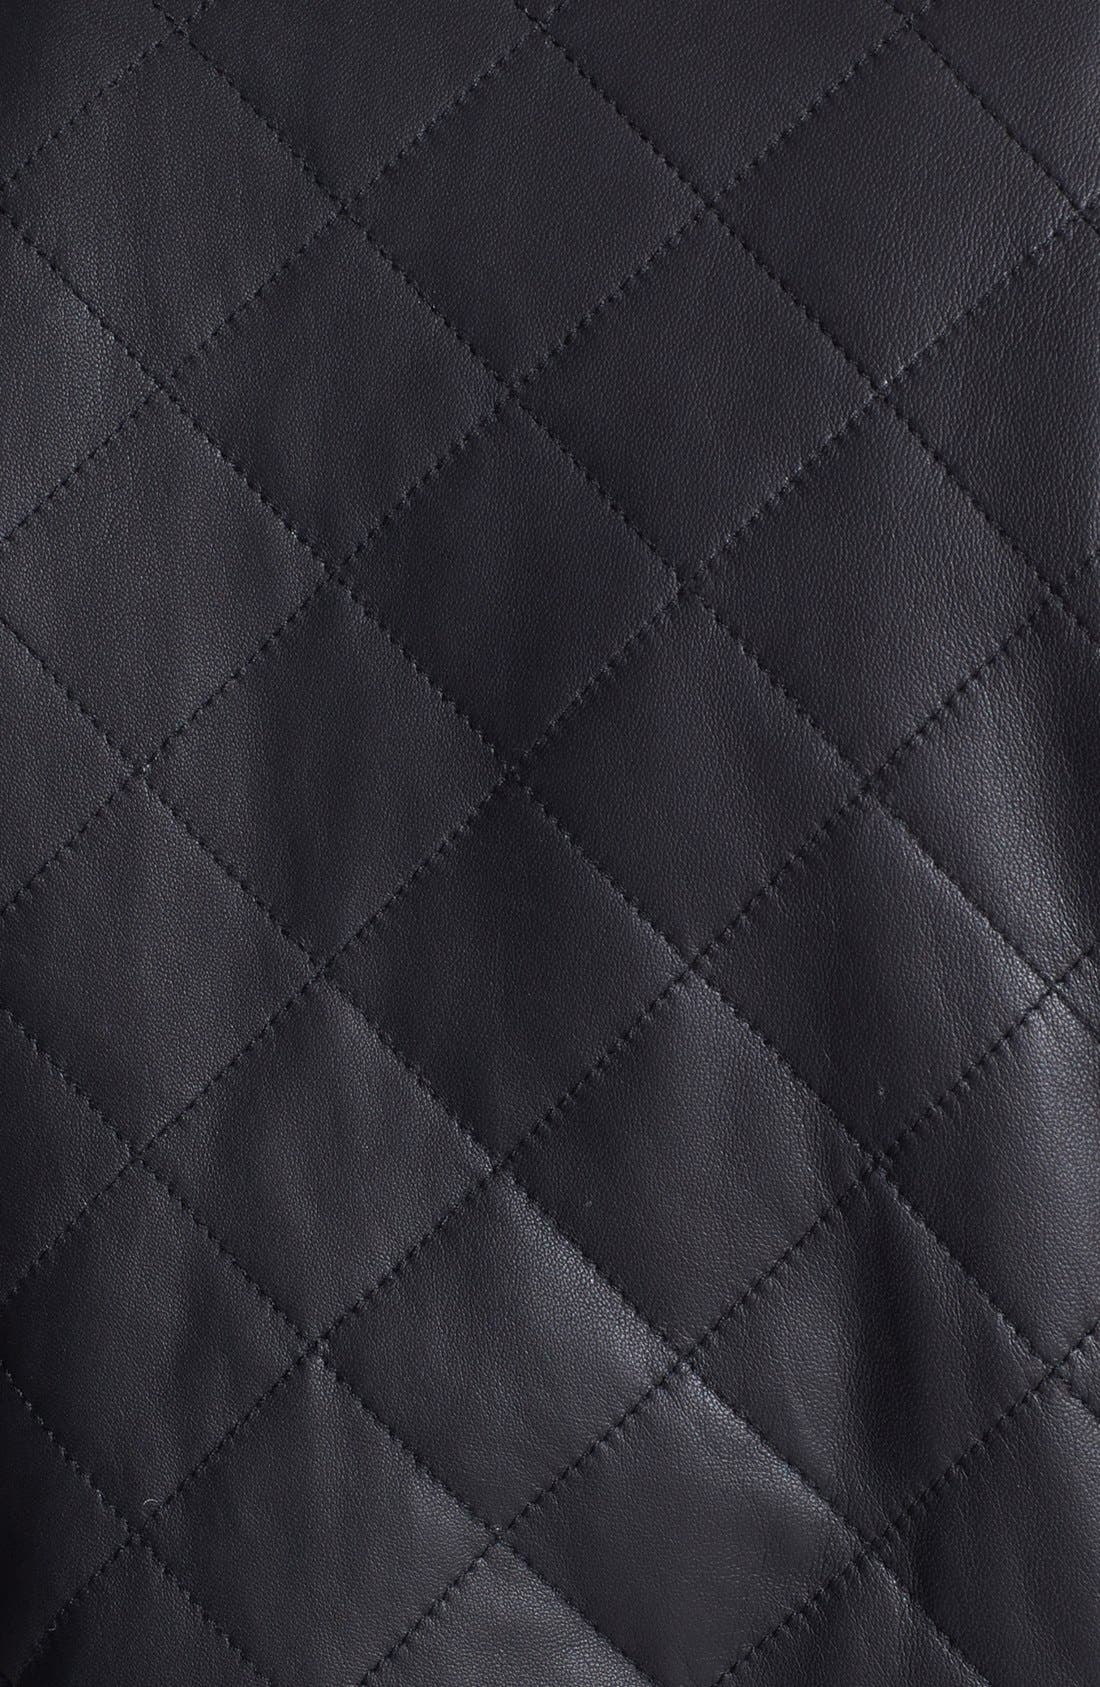 Quilted Leather Bomber Jacket,                             Alternate thumbnail 2, color,                             001